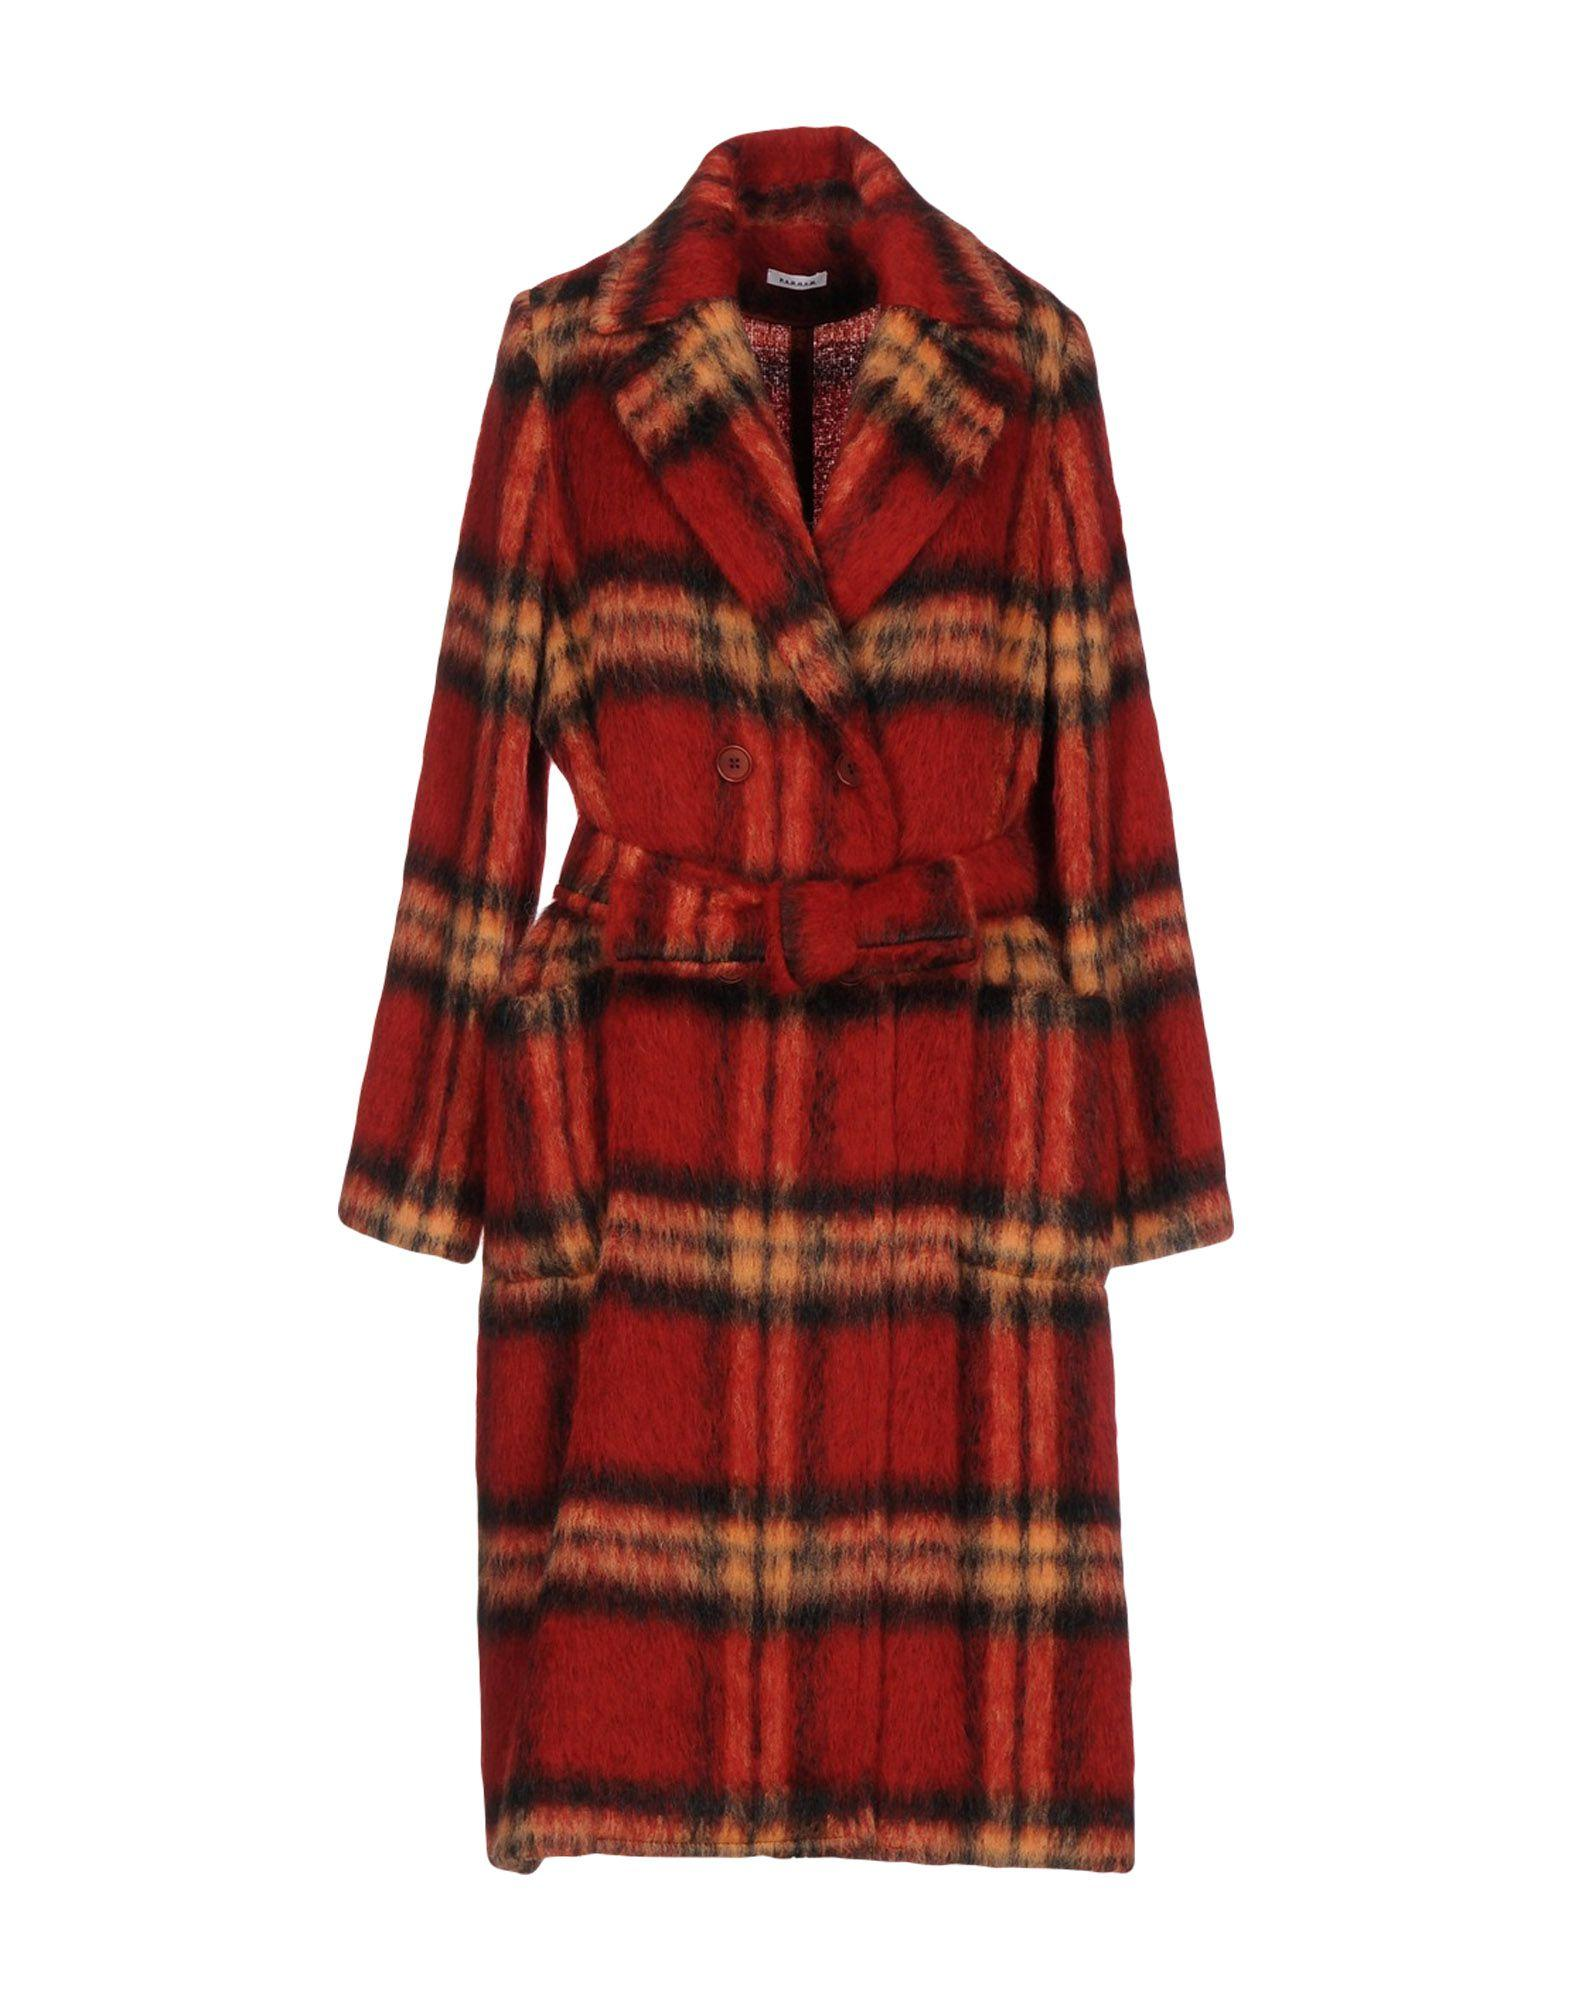 P.a.r.o.s.h. Belted Coats In Brick Red